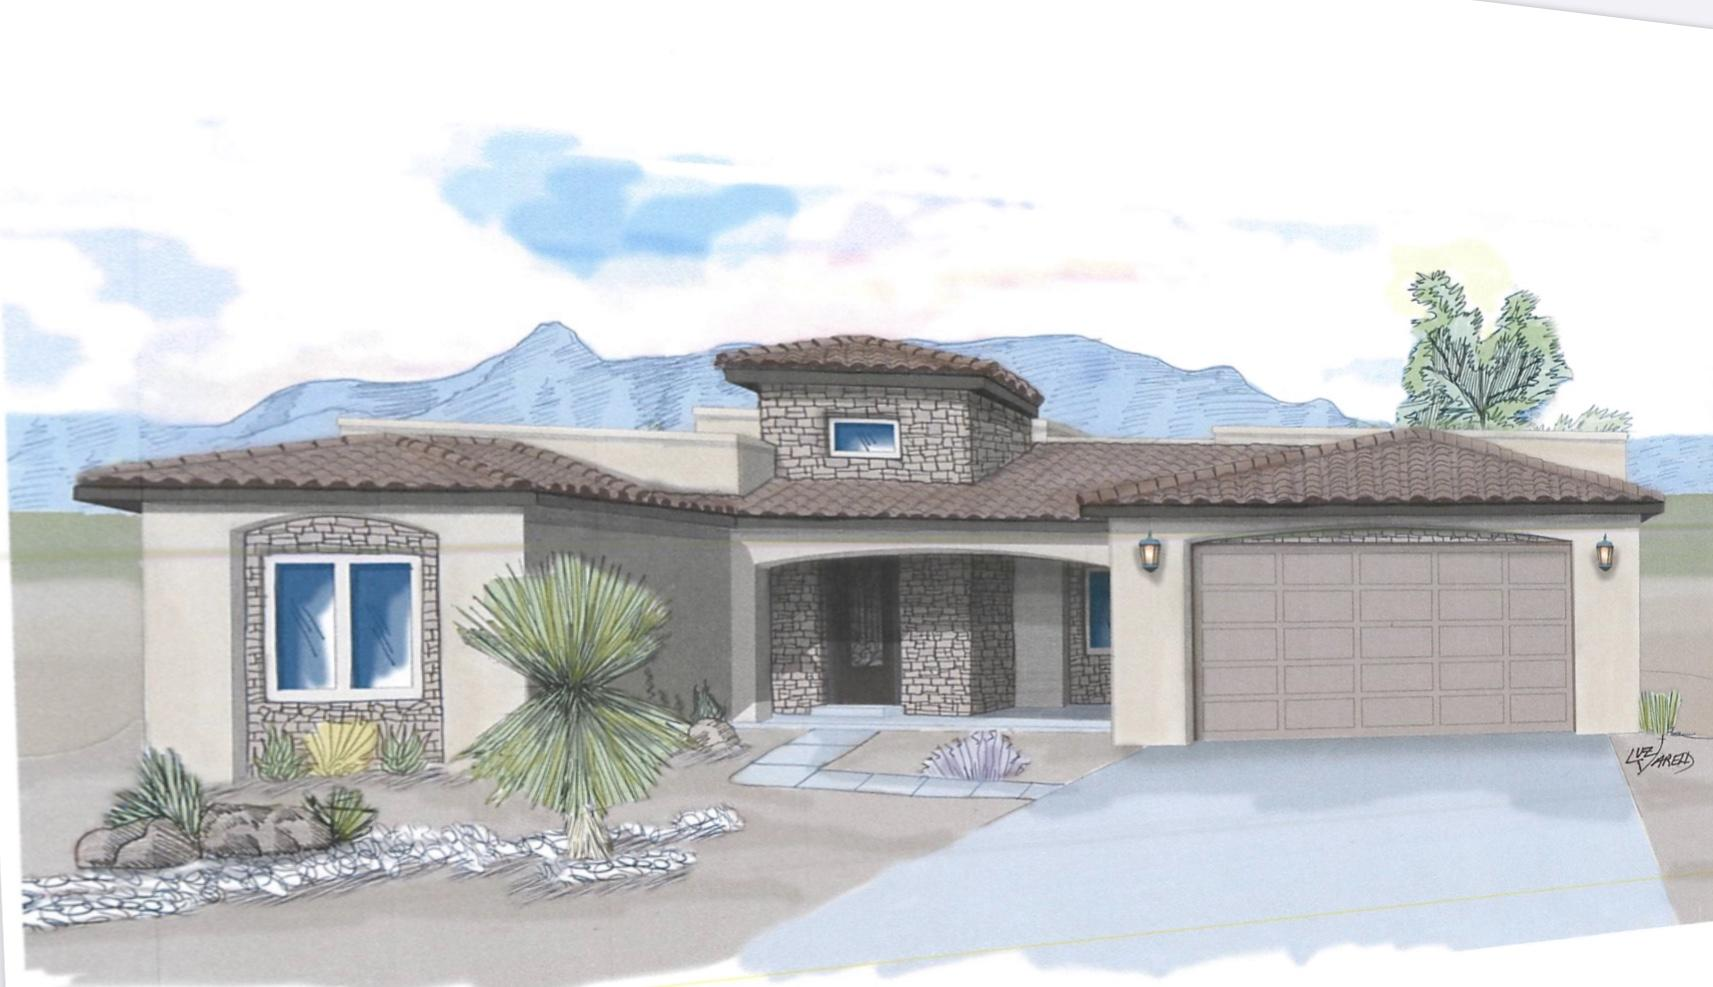 LOCATION & VIEWS!! Exceptionally quality built Custom home situated on a highly sought after unobstructed VIEWS lot in Paradise East. Not only does this home offer charm throughout, but it was built to capture the VIEWS, with quality and great attention in every detail. Be greeted in the welcoming foyer that looks straight through the house to capture the Beautiful Sandia Mountains through the cascading glass patio doors. The open concept is great for entertaining and boasts any chef's dream kitchen. Custom granite countertops throughout. Enjoy beautiful sunrises or Sunsets on the Roof Top Patio with a spiral staircase overlooking all of Albuquerque, the Sandia, Jemez & Manzano Mountains. This home is easy access to highways, shopping, trials and so much more.  Welcome Home!